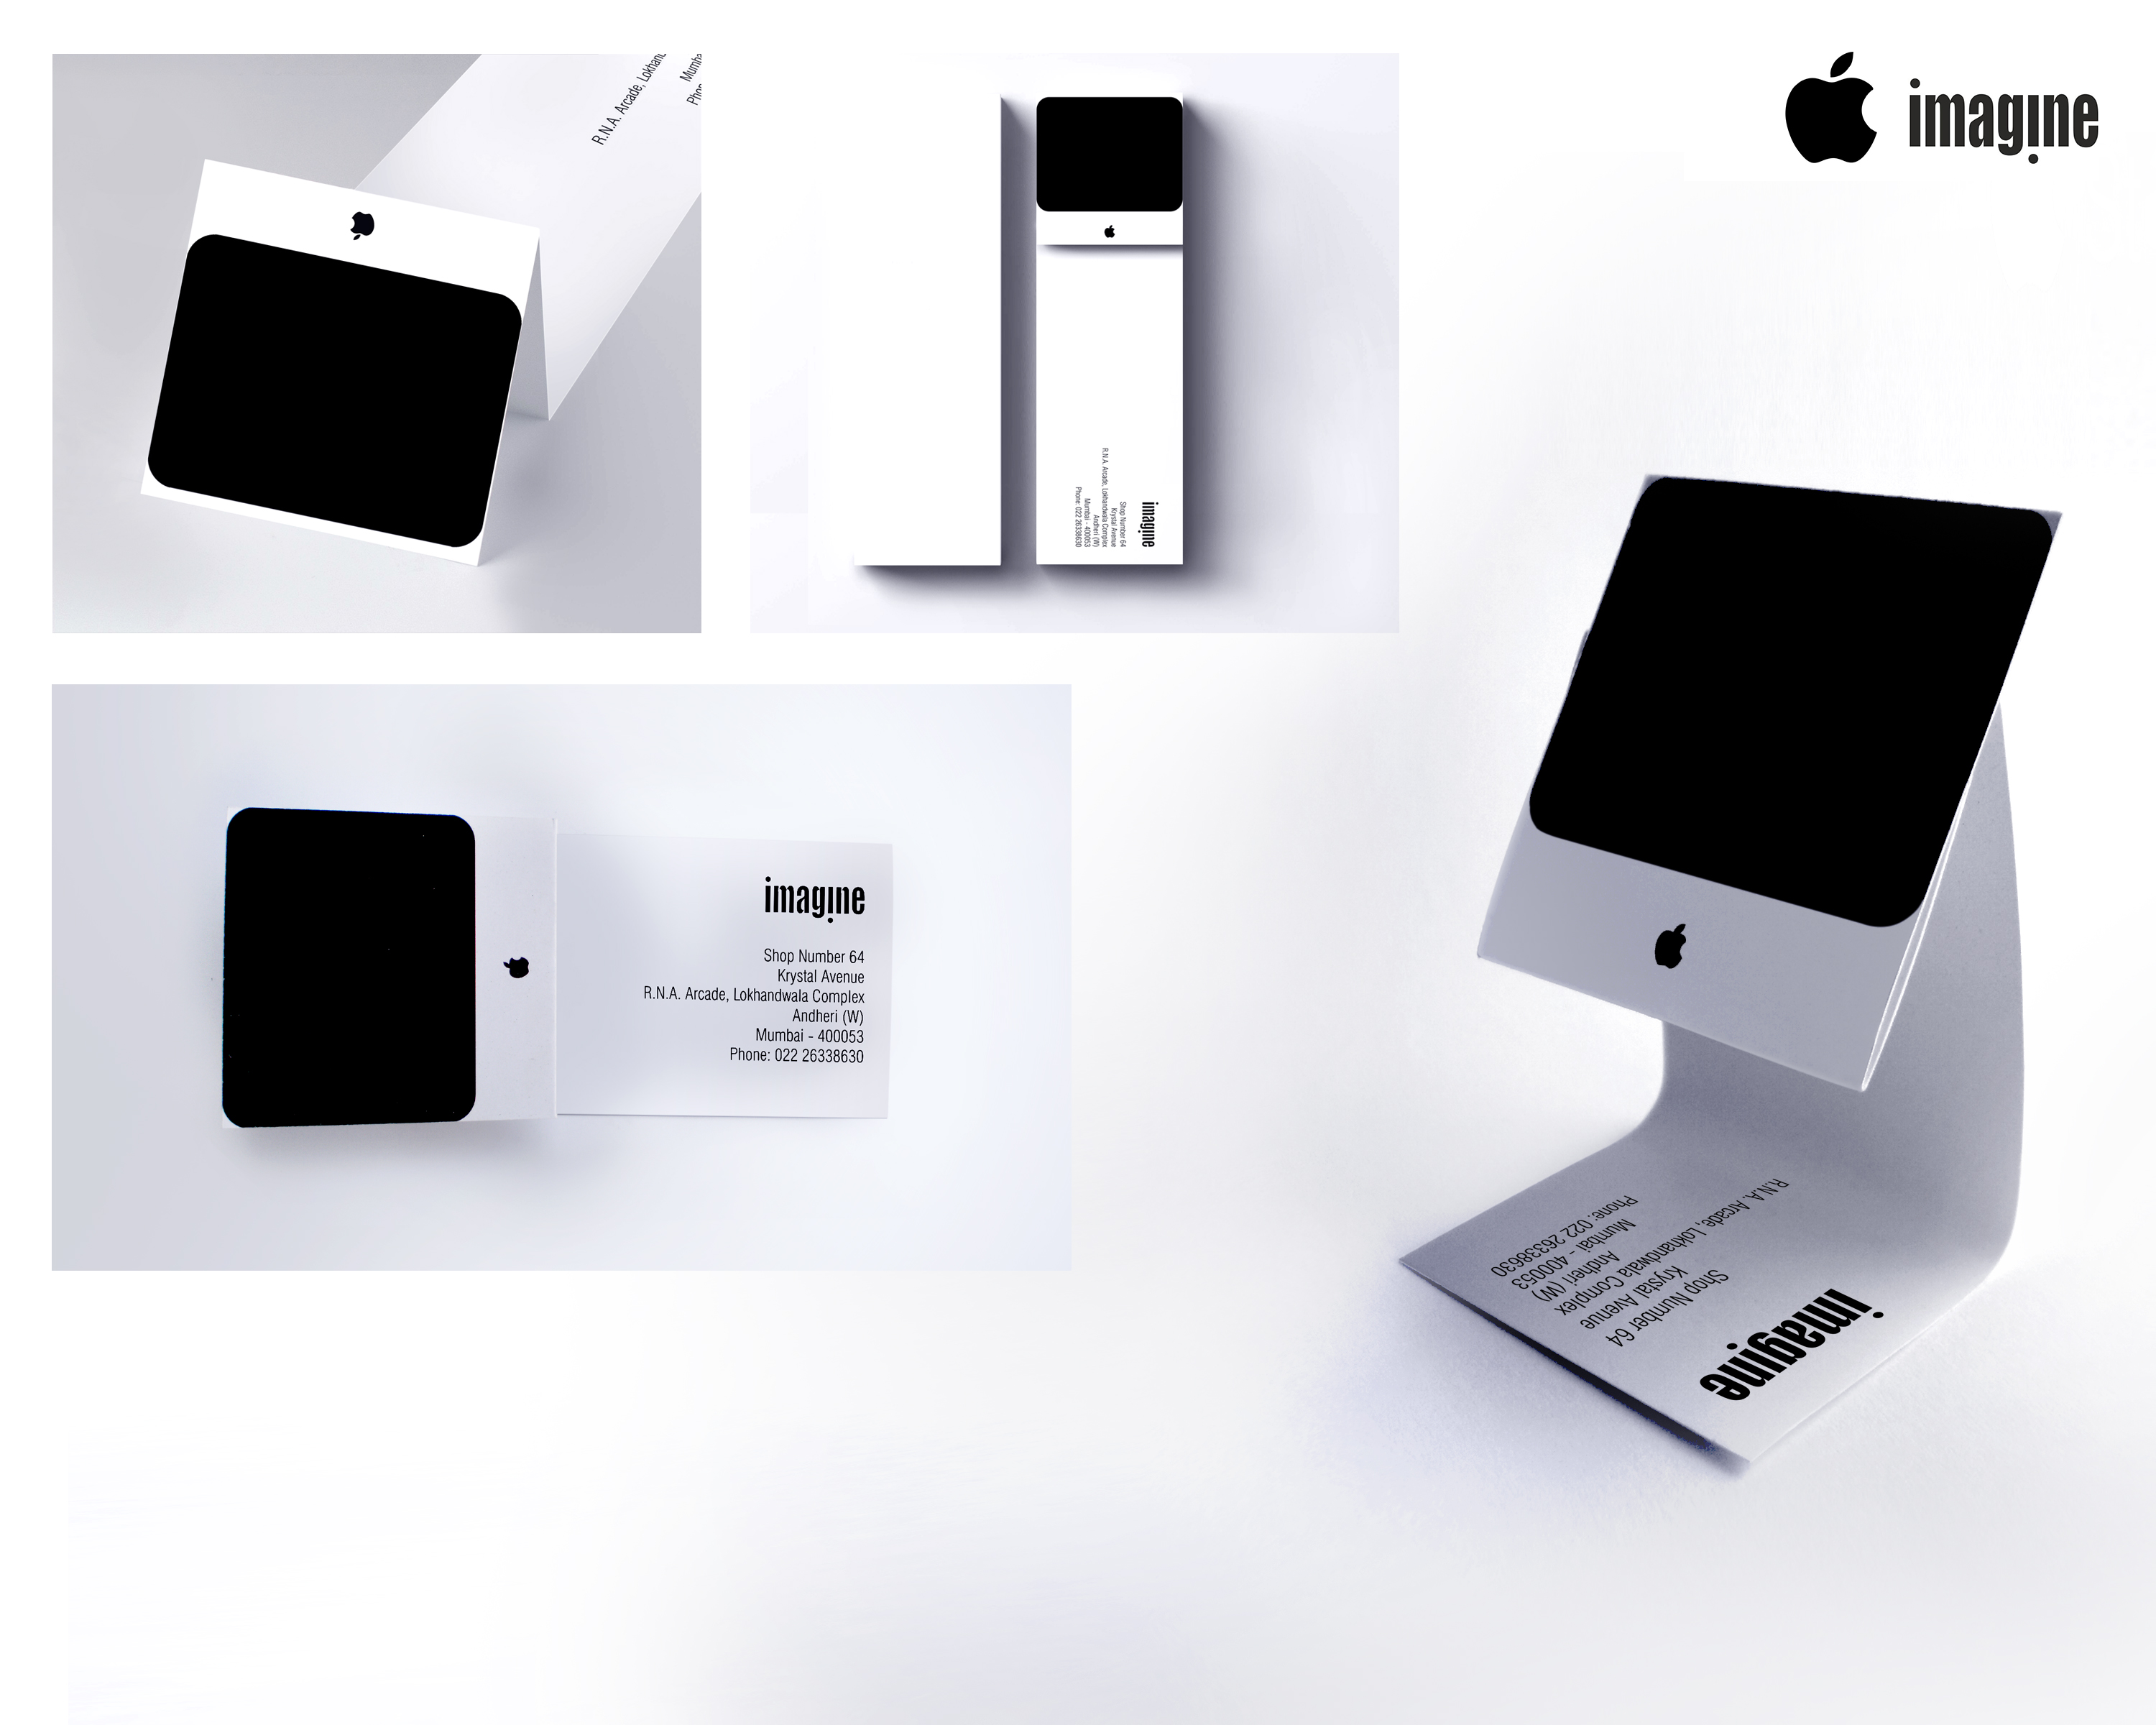 Apple Direct Advert By : iMac Business Card | Ads of the World™